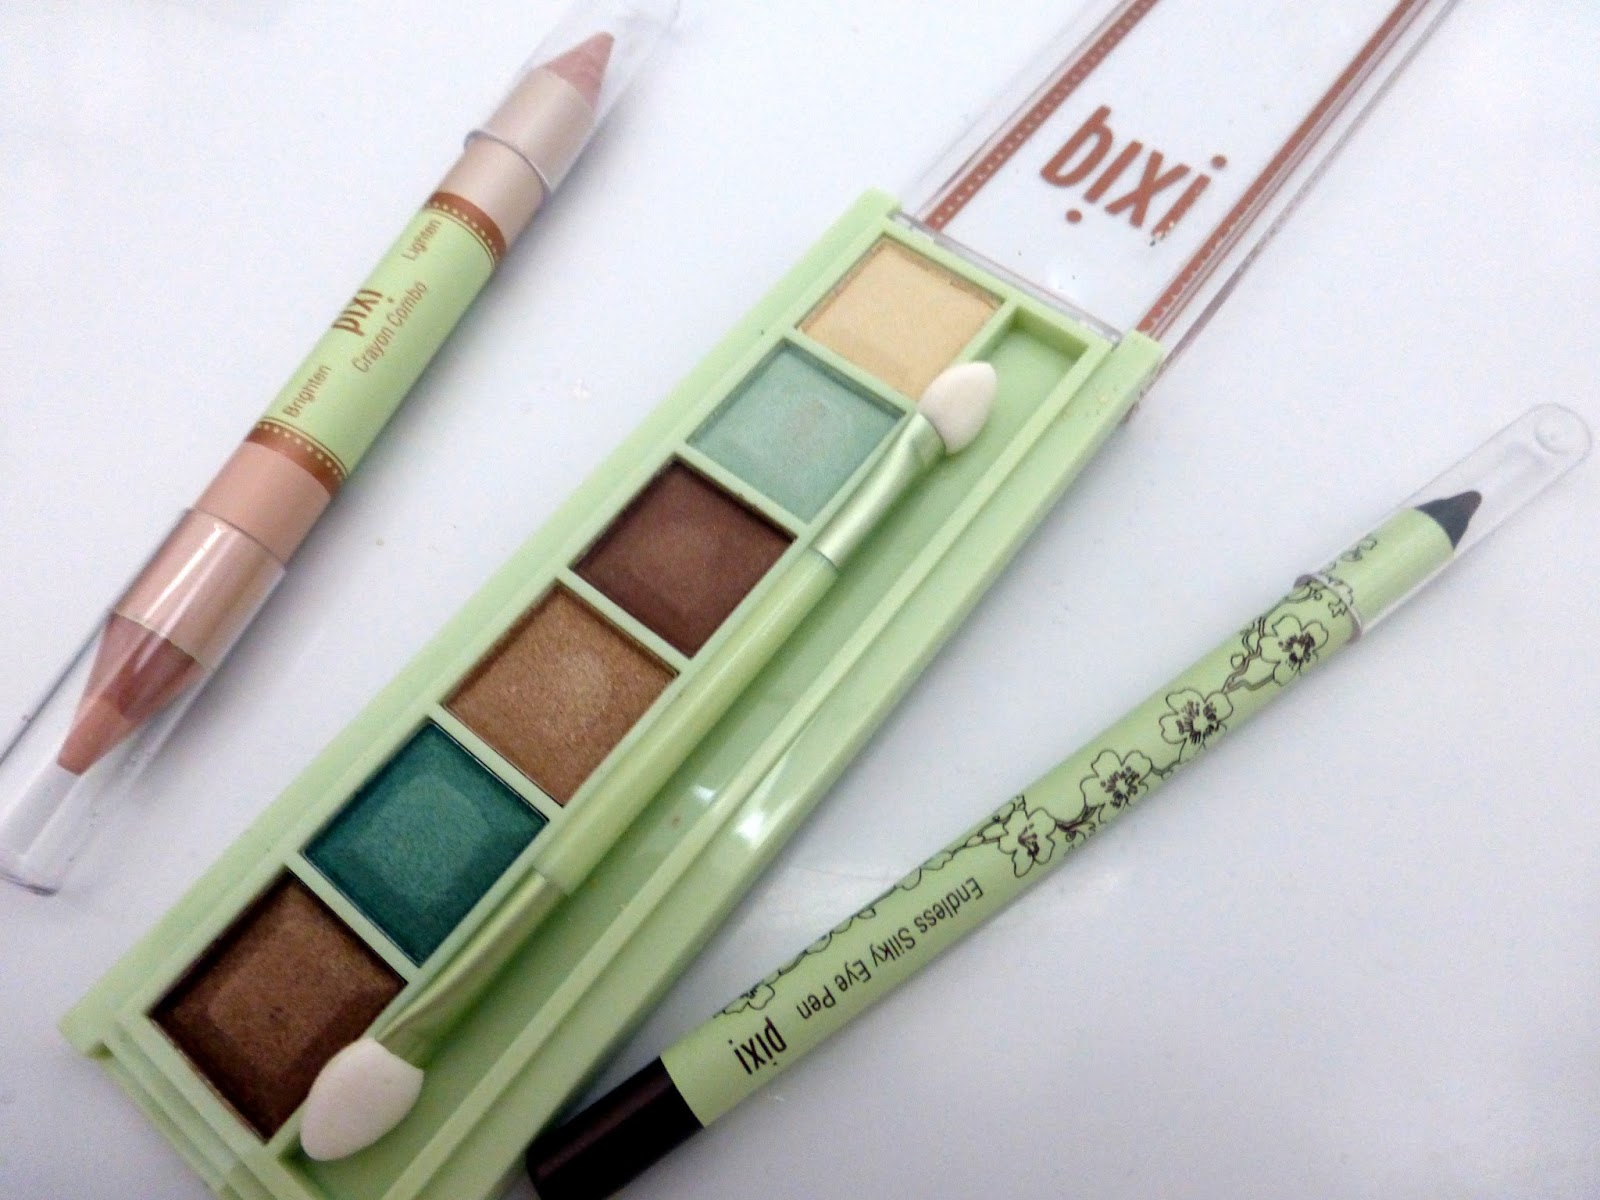 Pixi Makeup from HQ Hair